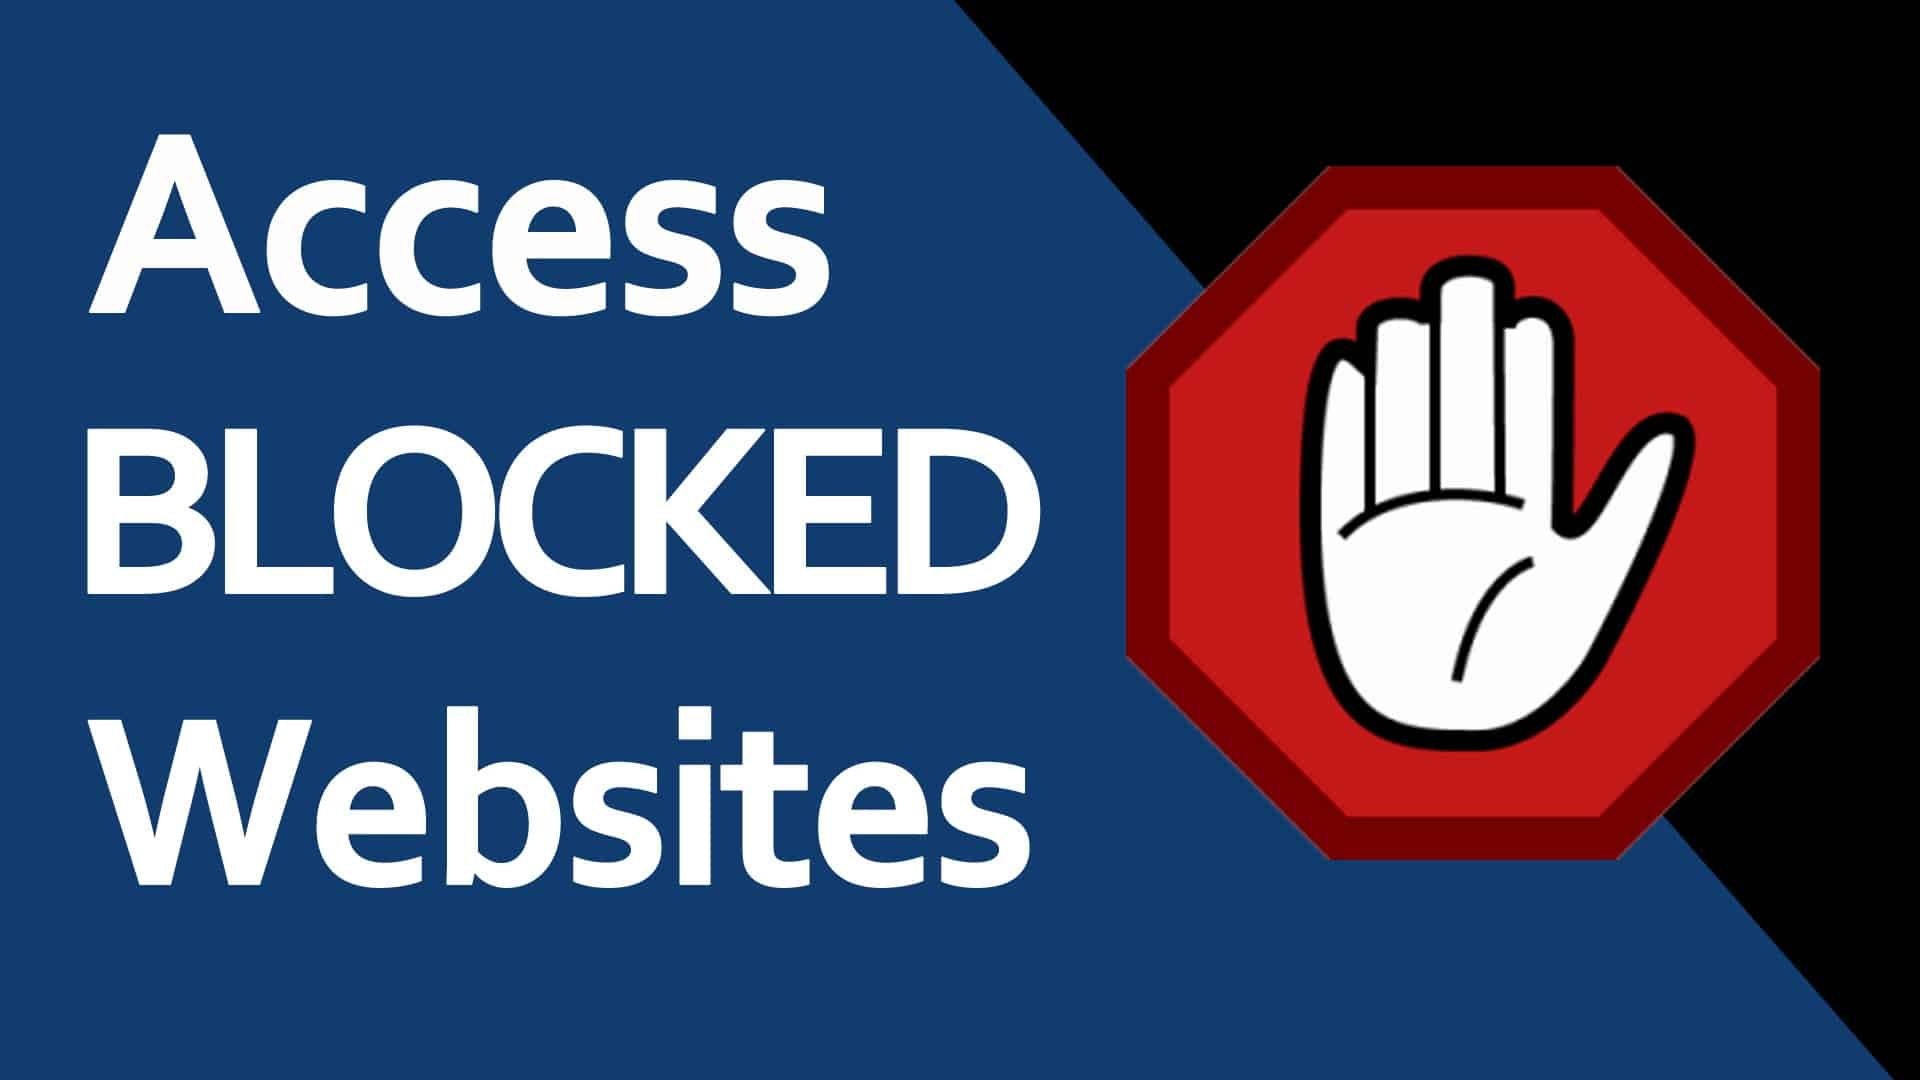 5 ways to access blocked sites ccuart Image collections